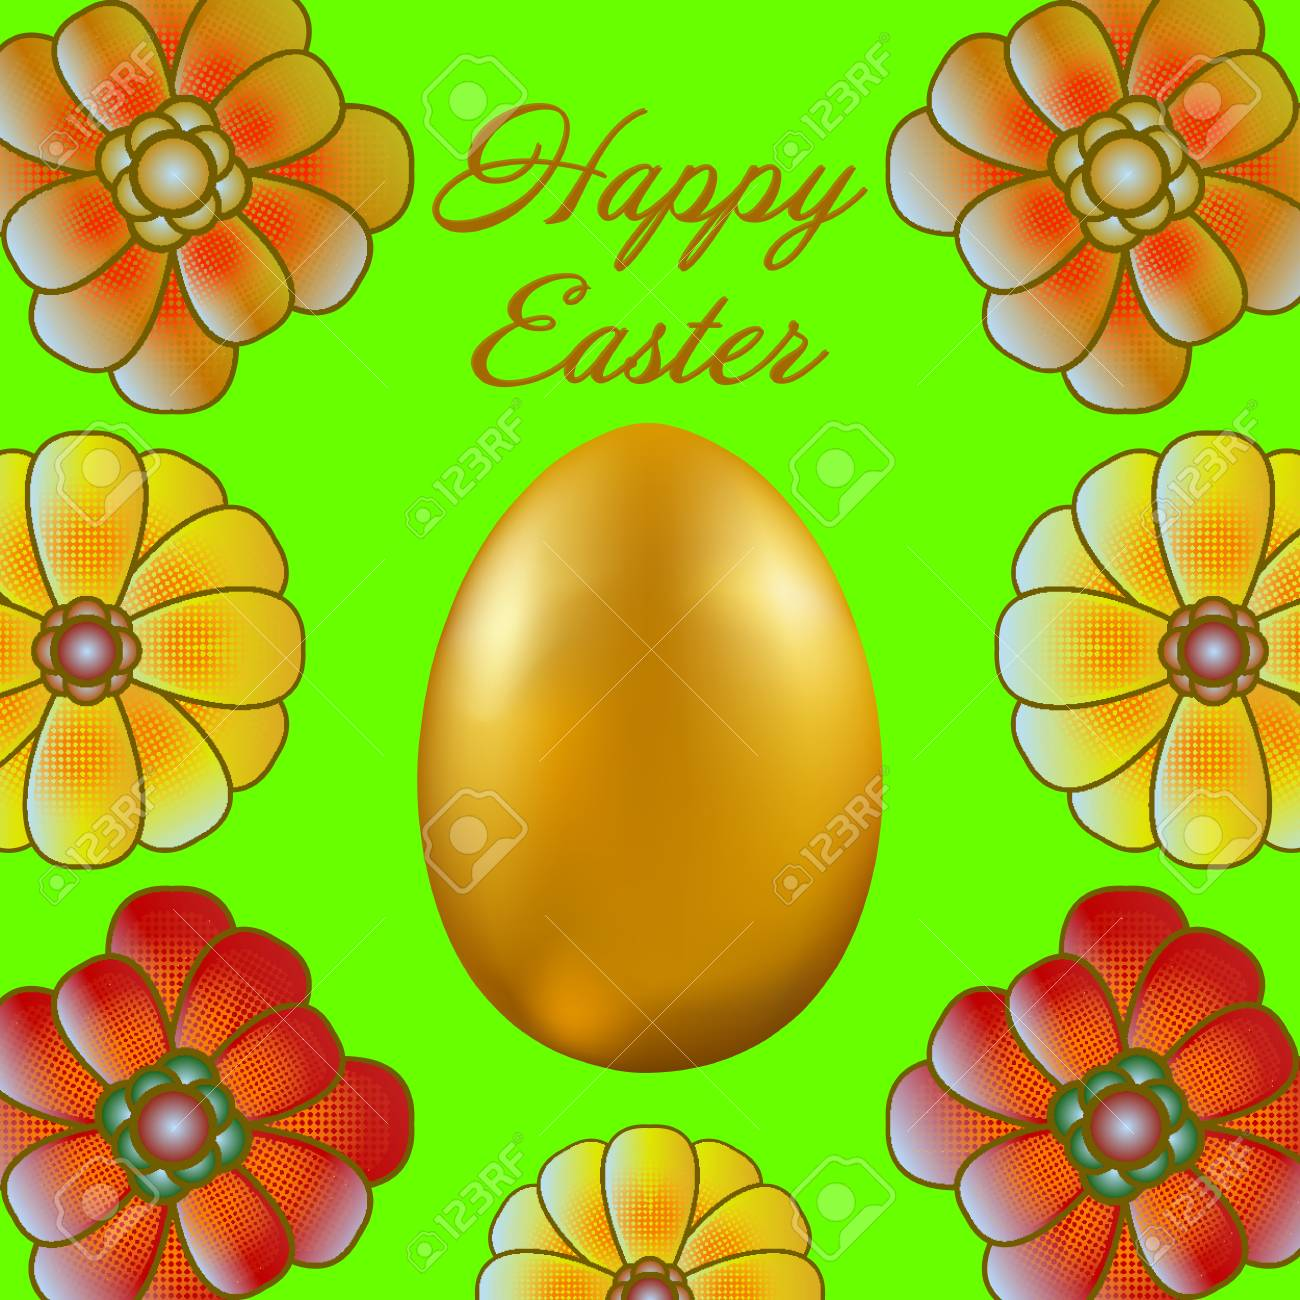 Happy Easter Isolated On Green Background Golden Egg And Flowers